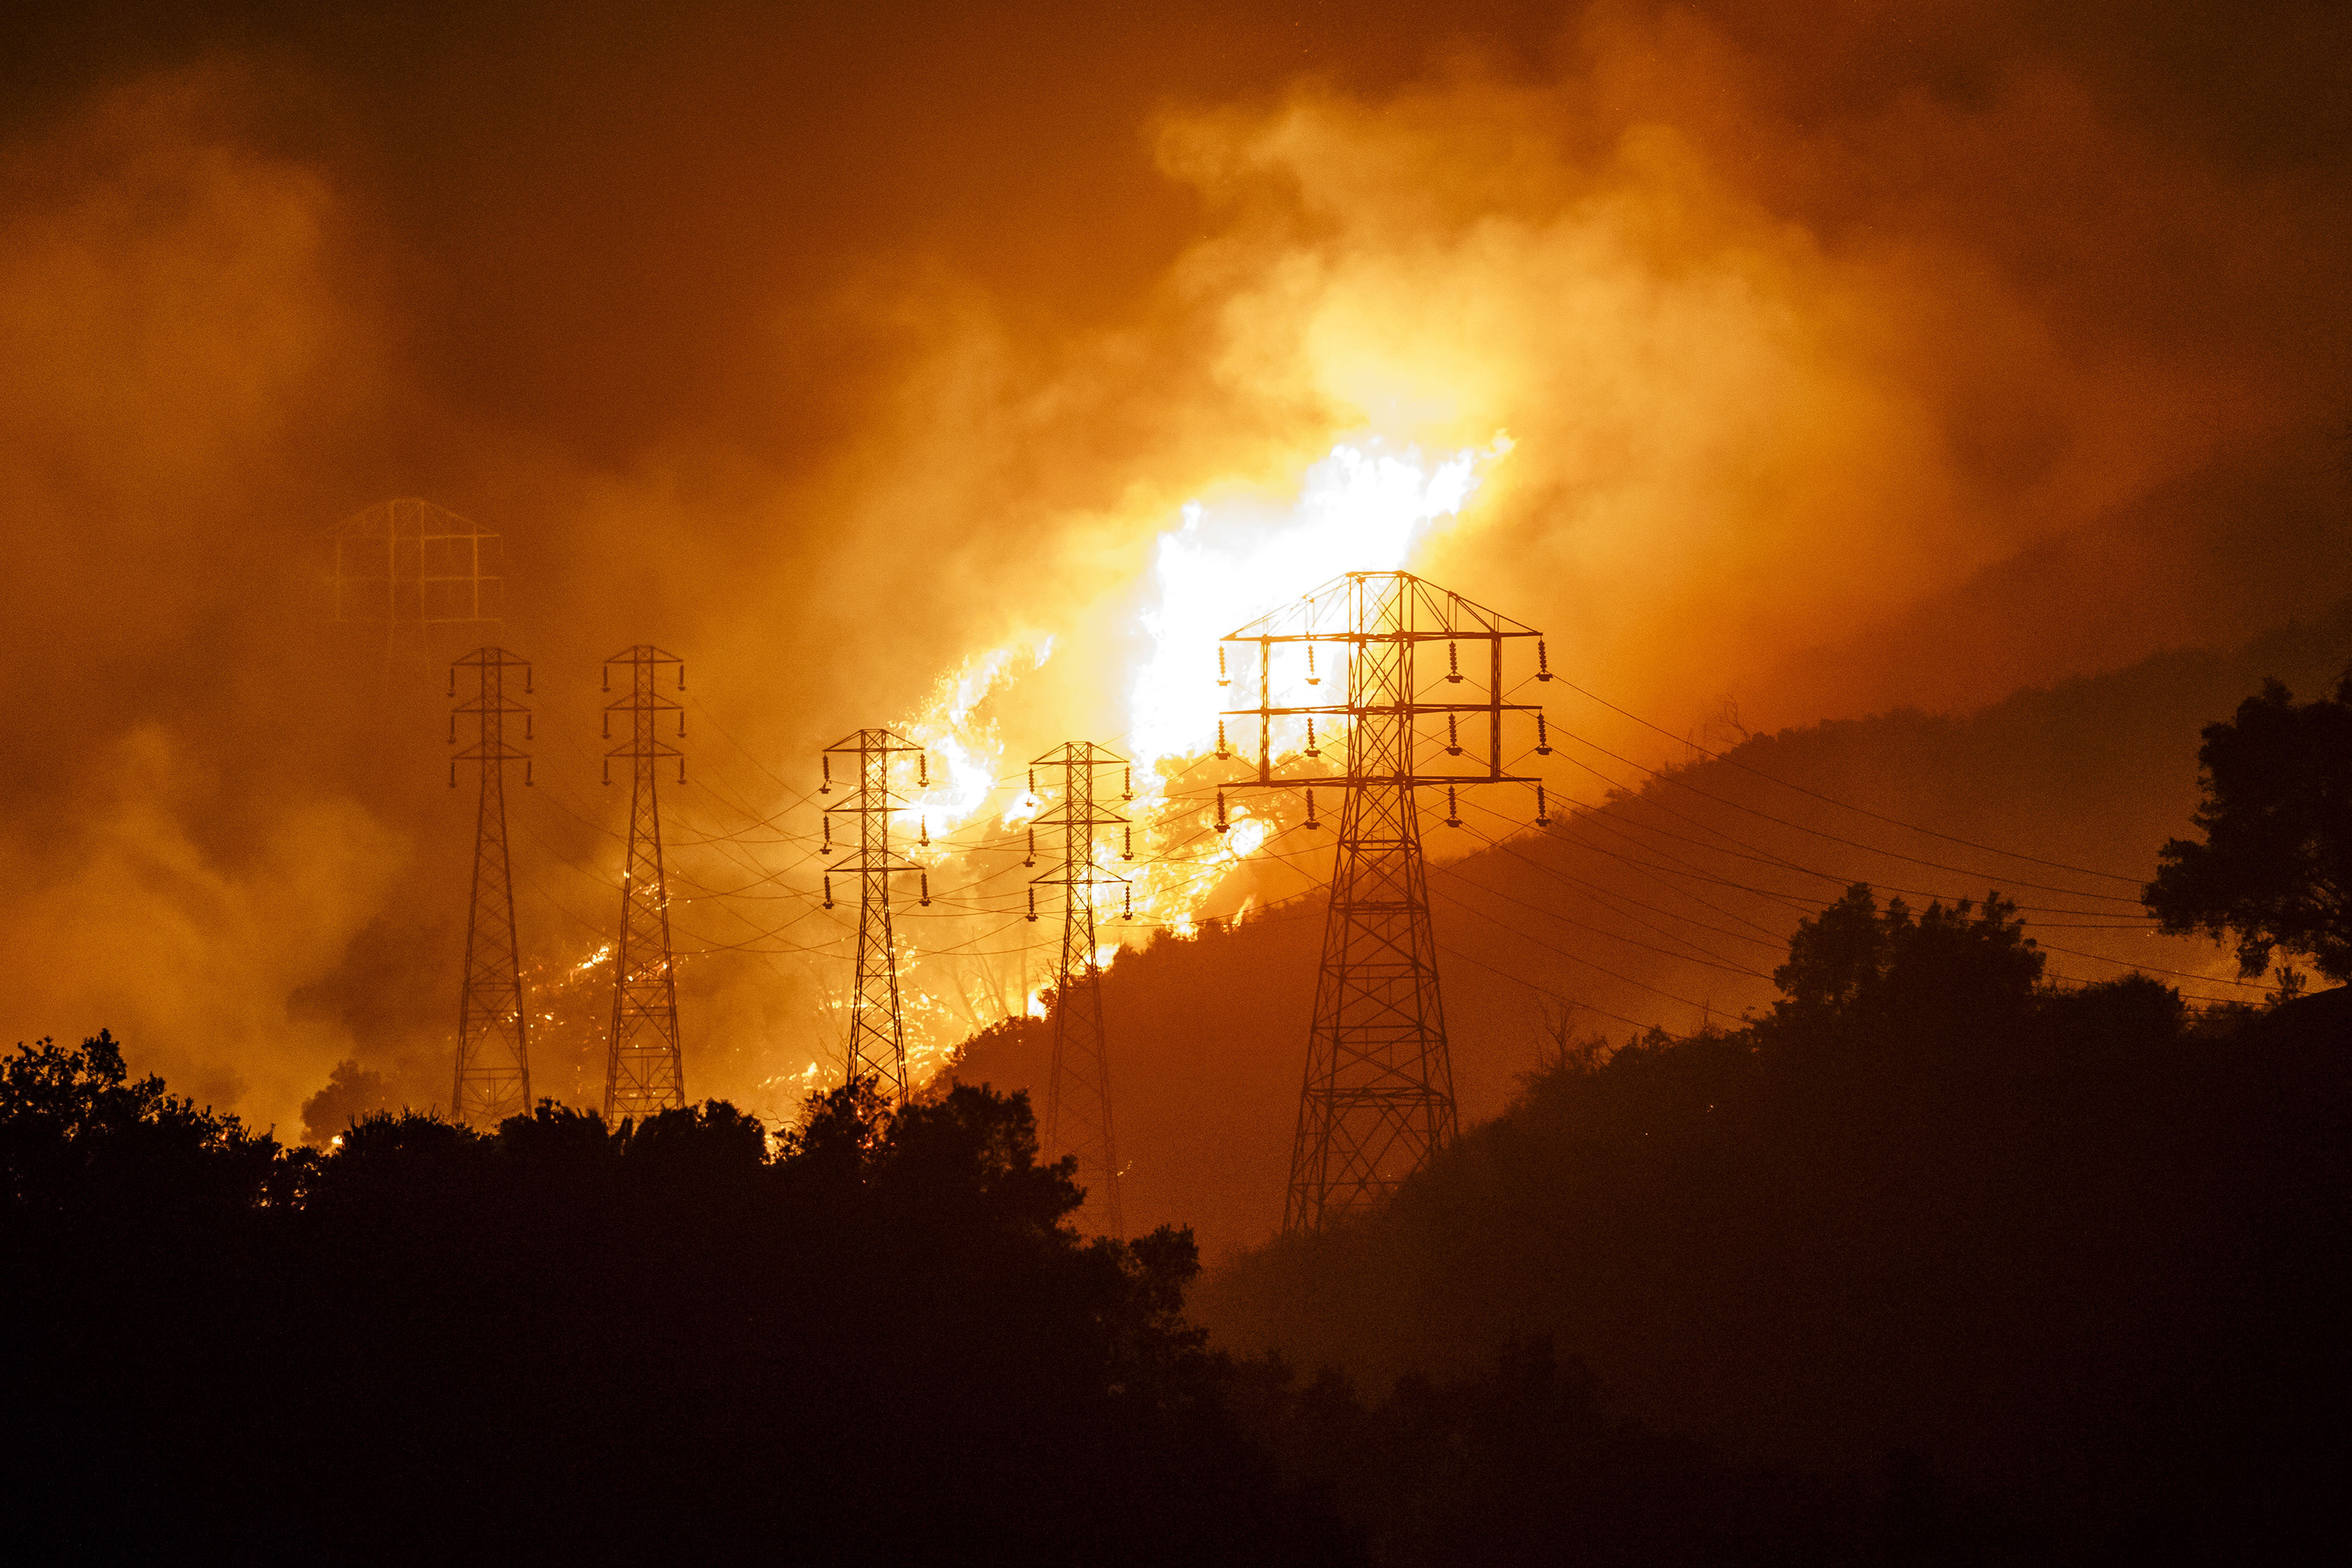 Flames whip around utility power lines as winds drive towards town in Sycamore Canyon threatening structures in Montecito, Calif., on Dec. 16, 2017. (Marcus Yam/Los Angeles Times/TNS)